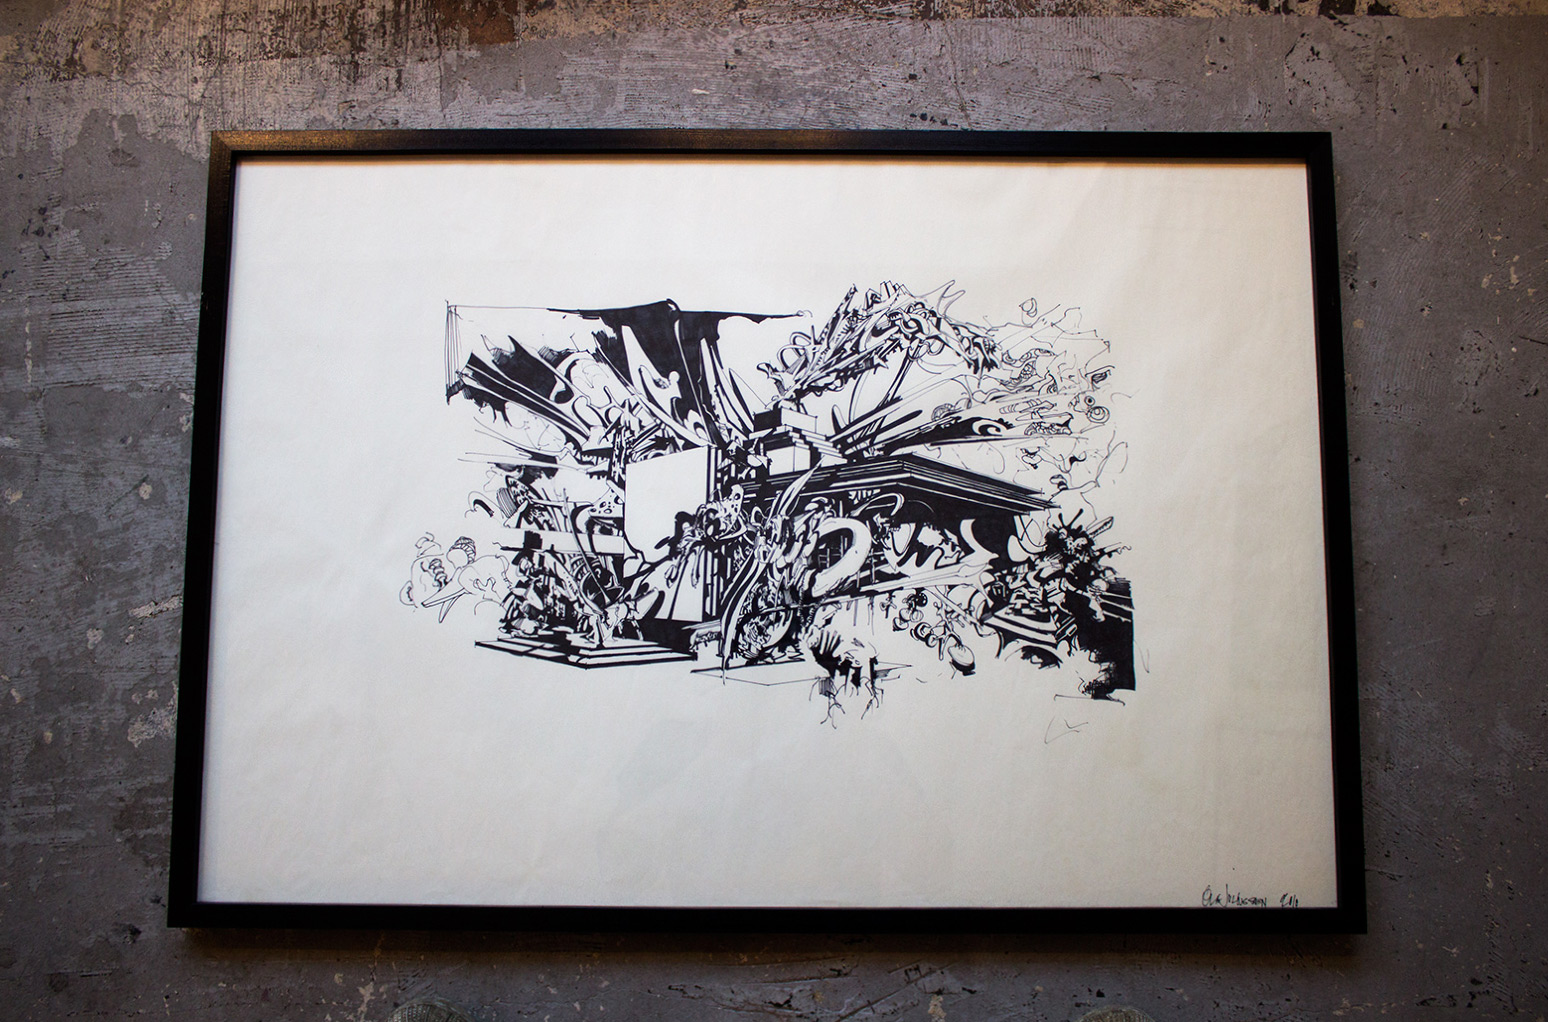 drawings, abstract, expressive, geometric, graphical, illustrative, monochrome, pop, architecture, movement, patterns, black, white, artliner, ink, paper, marker, abstract-forms, architectural, buildings, contemporary-art, danish, decorative, design, interior, interior-design, modern, modern-art, nordic, scandinavien, street-art, Buy original high quality art. Paintings, drawings, limited edition prints & posters by talented artists.